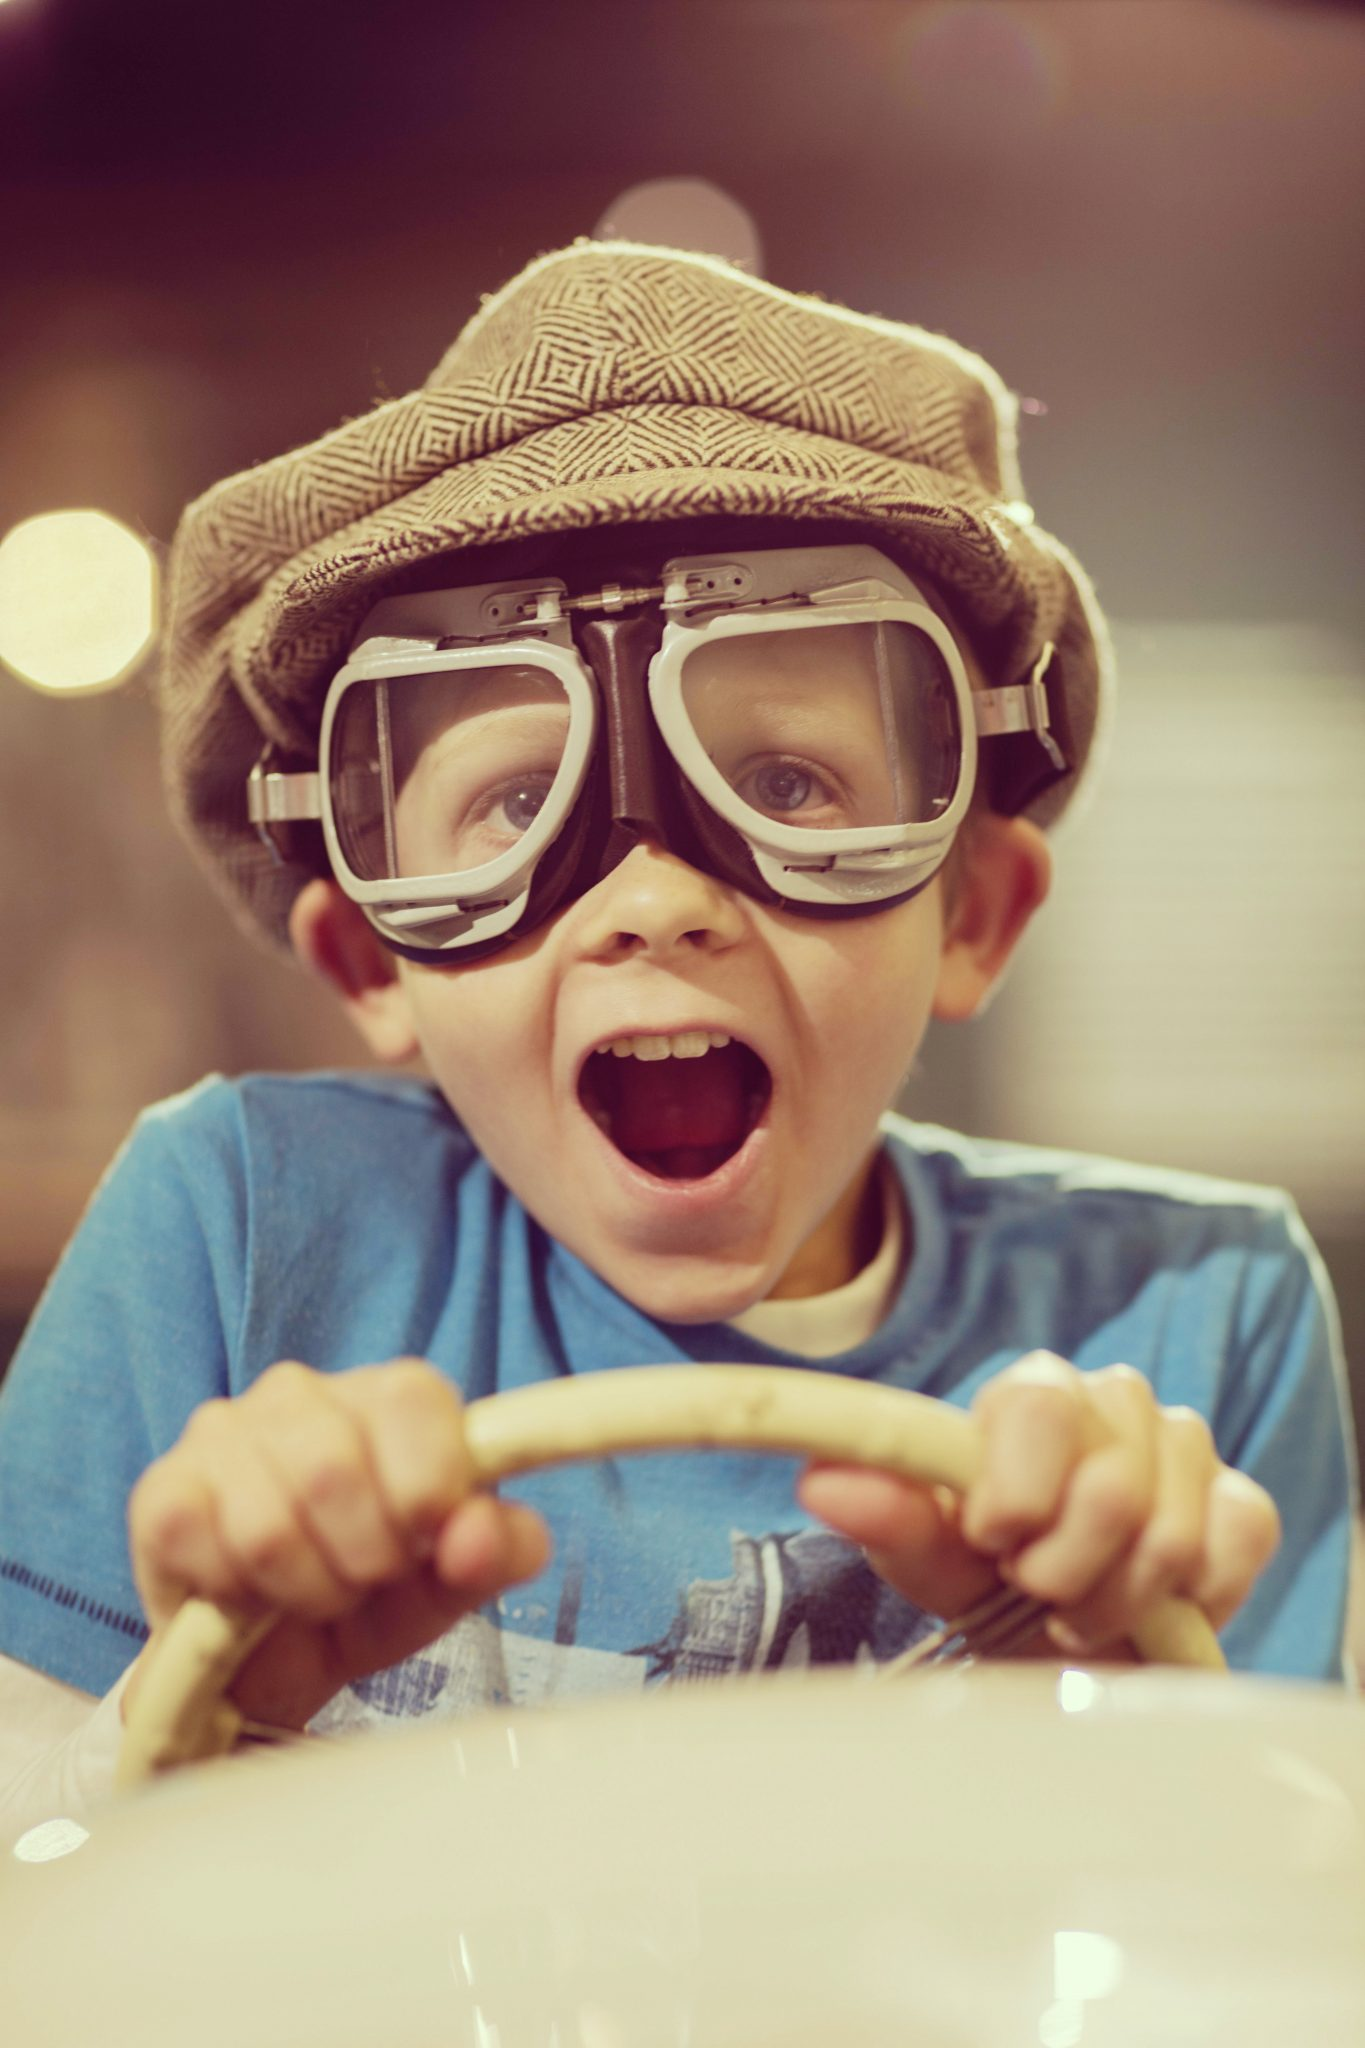 British motor museum, attractions for kids who love cars, days out with kids motor museum